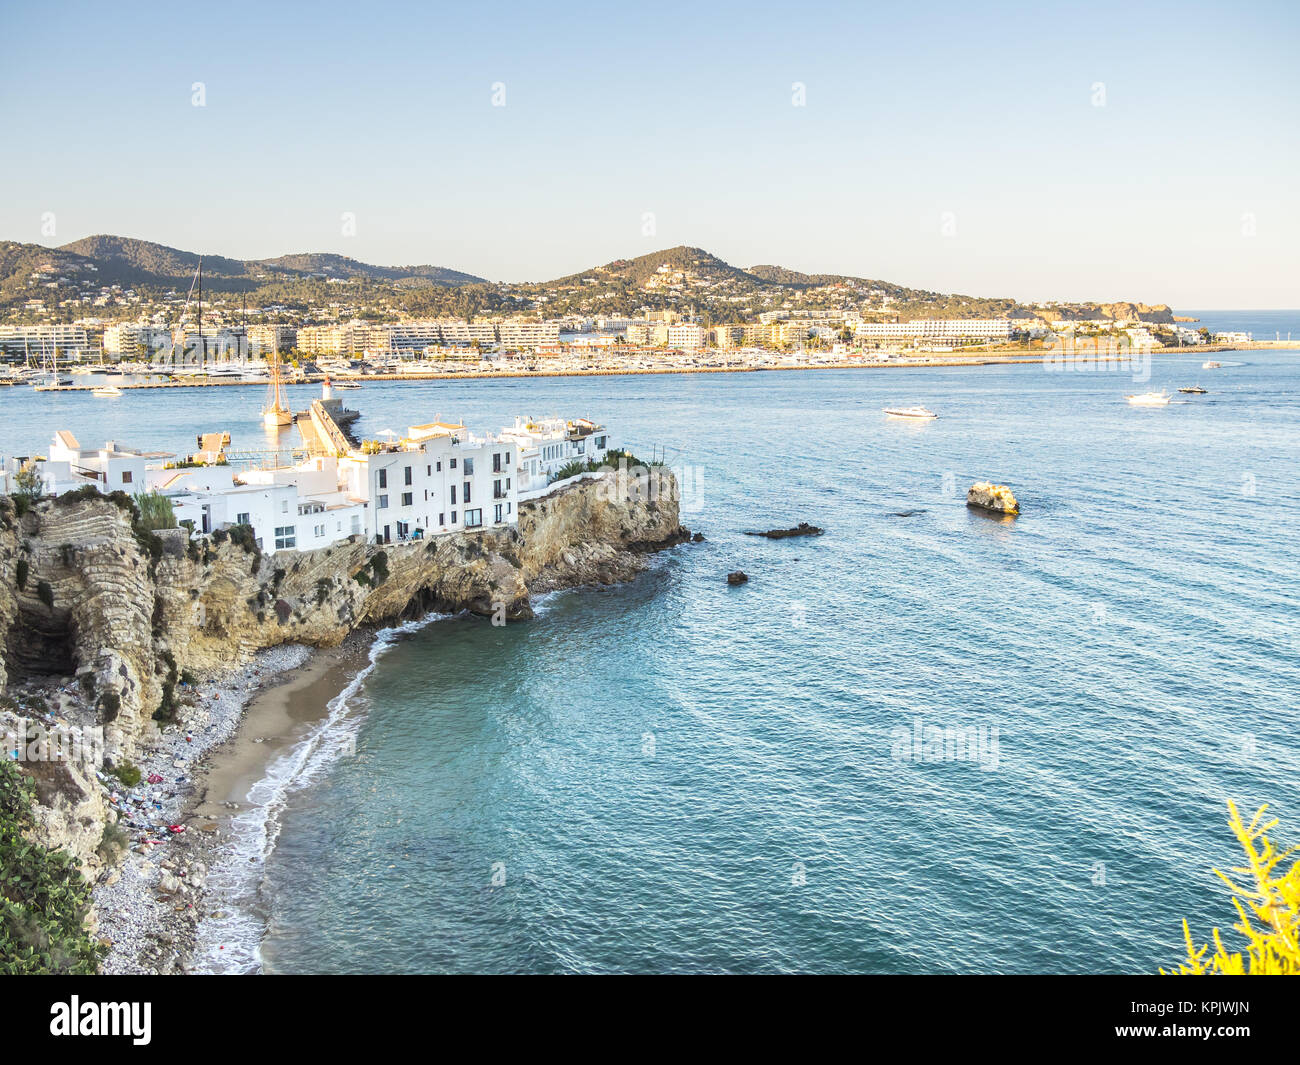 View of Ibiza houses over a cliff - Stock Image